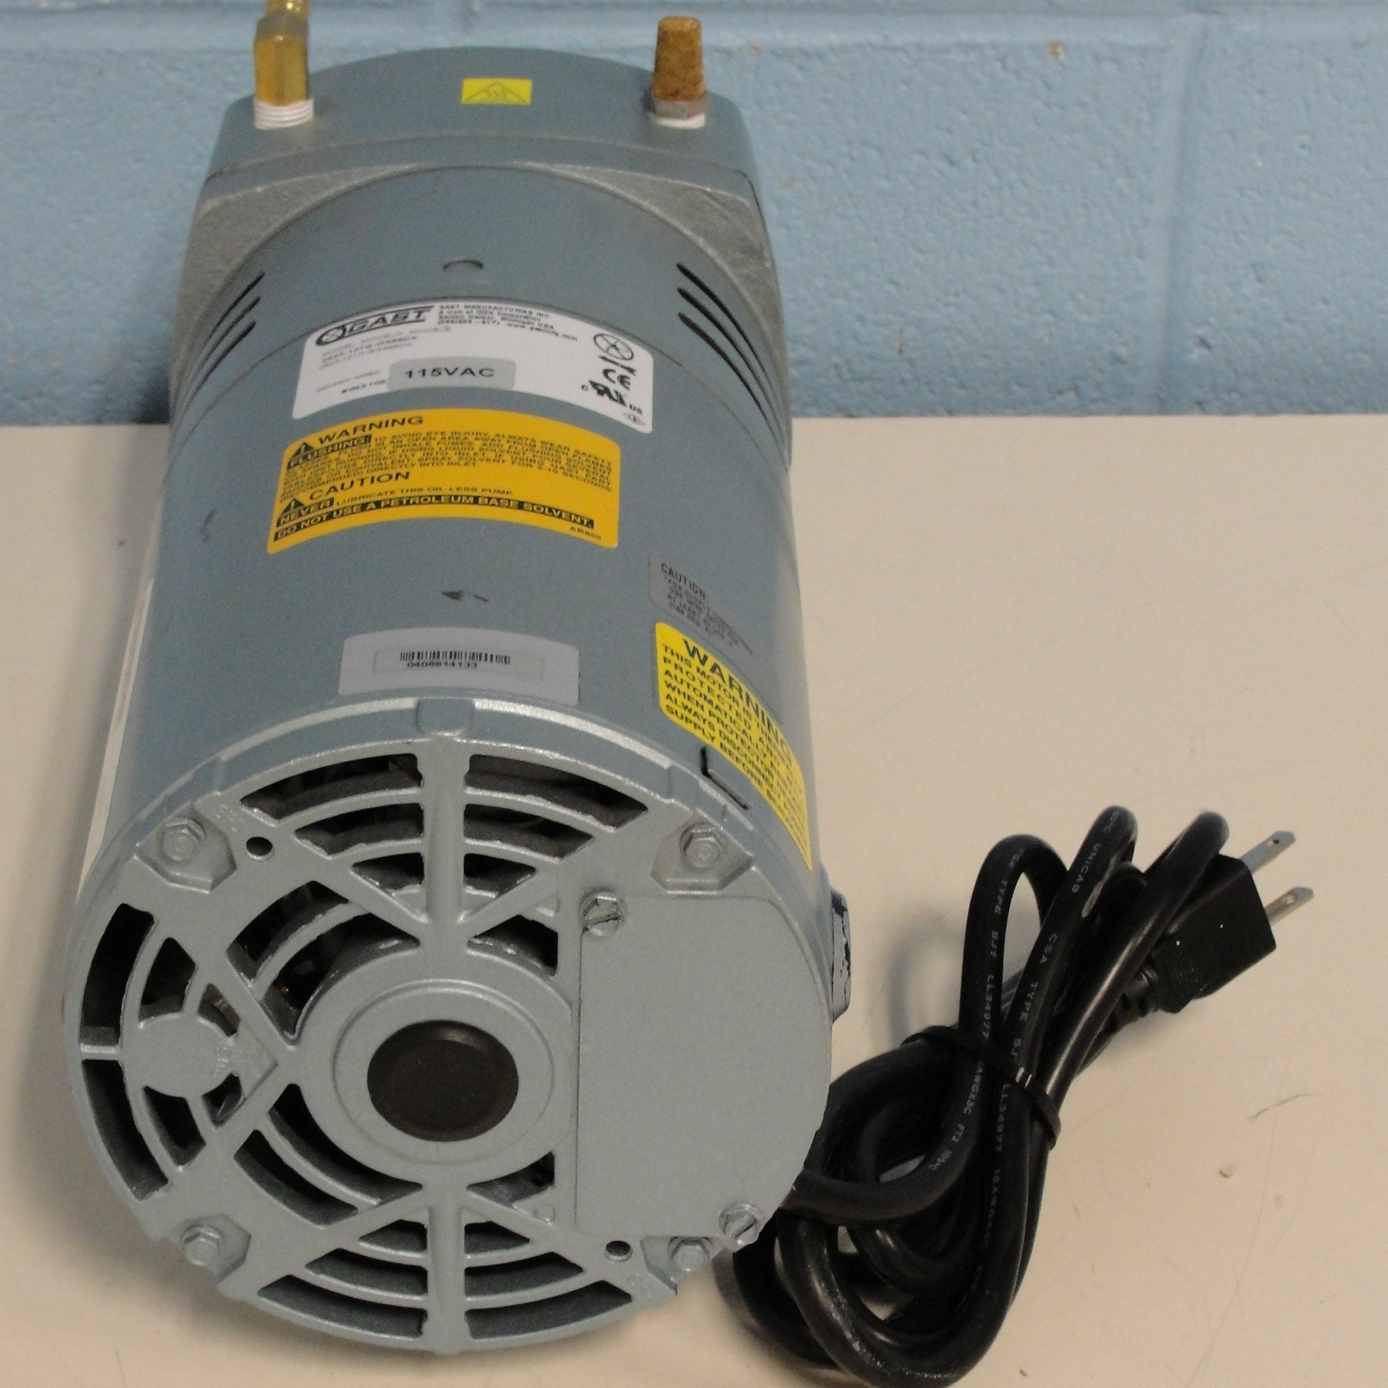 Refurbished Gast Oilless Rotary Vane Vacuum Pump